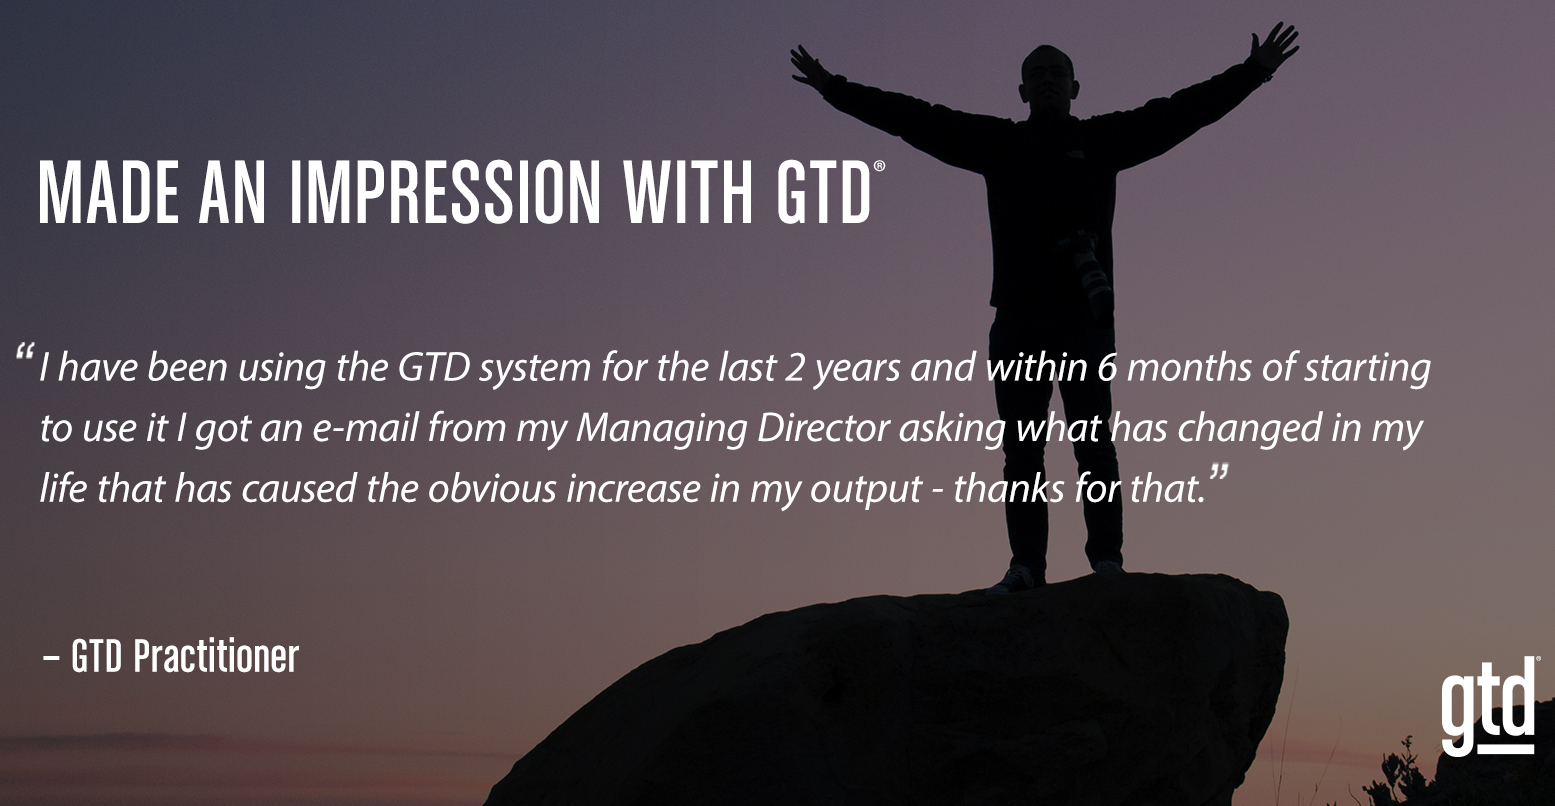 Made an Impression with GTD